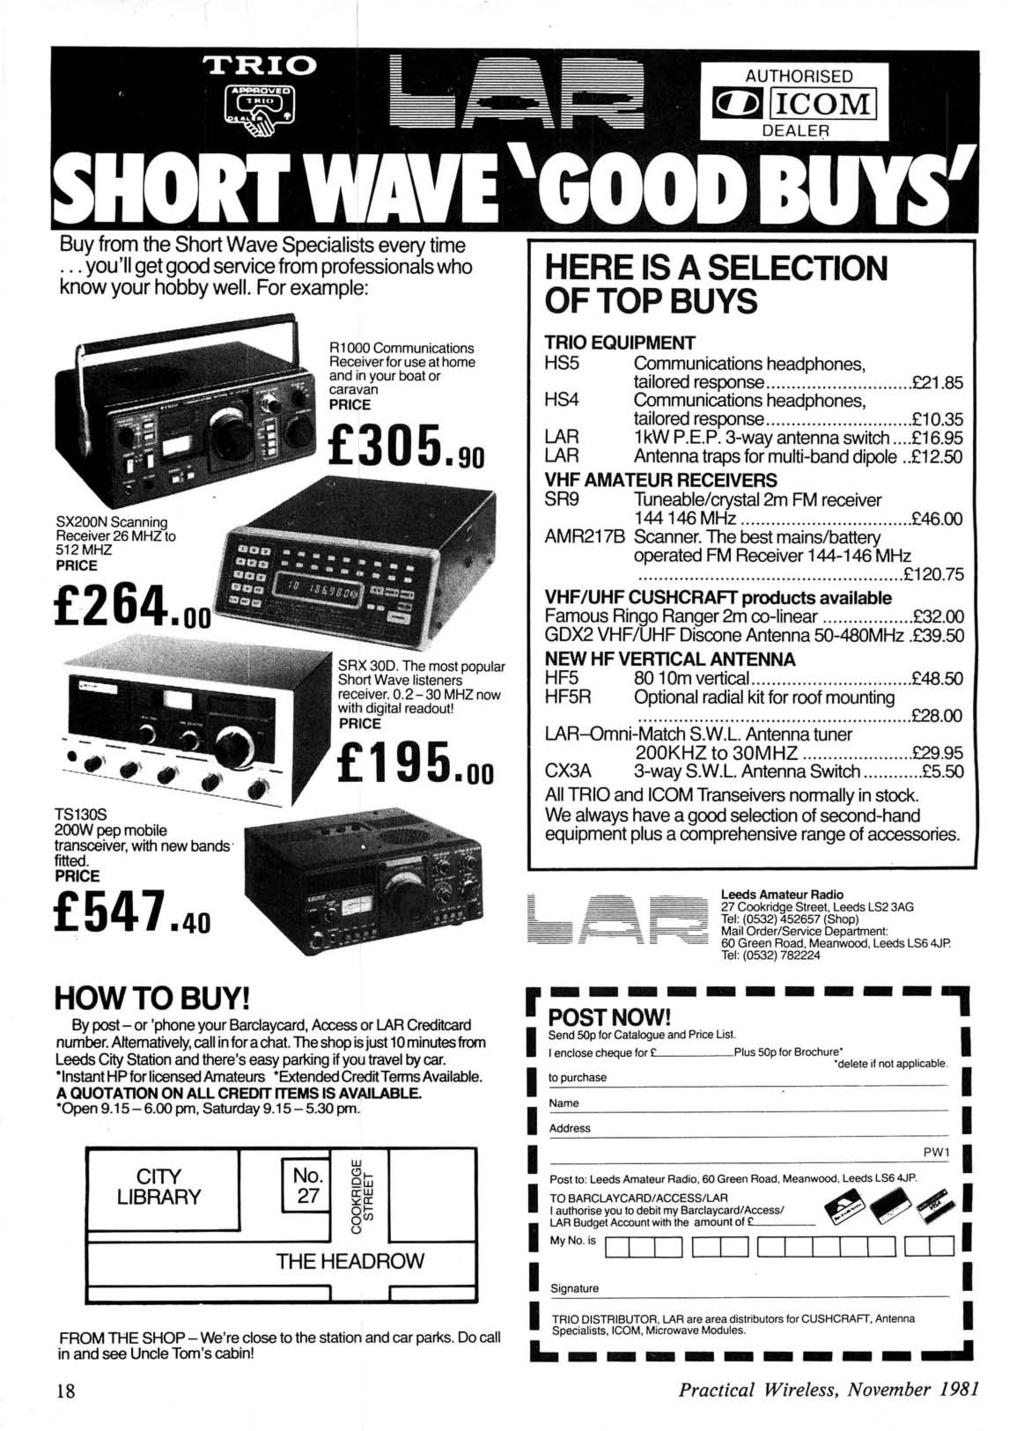 Lcssa Cf Aoic Teams 16m 23 H F Band Jp 6v Lead Acid Battery Charger Model Shop Leeds Buy From The Short Wave Specialists Every Time Youll Get Good